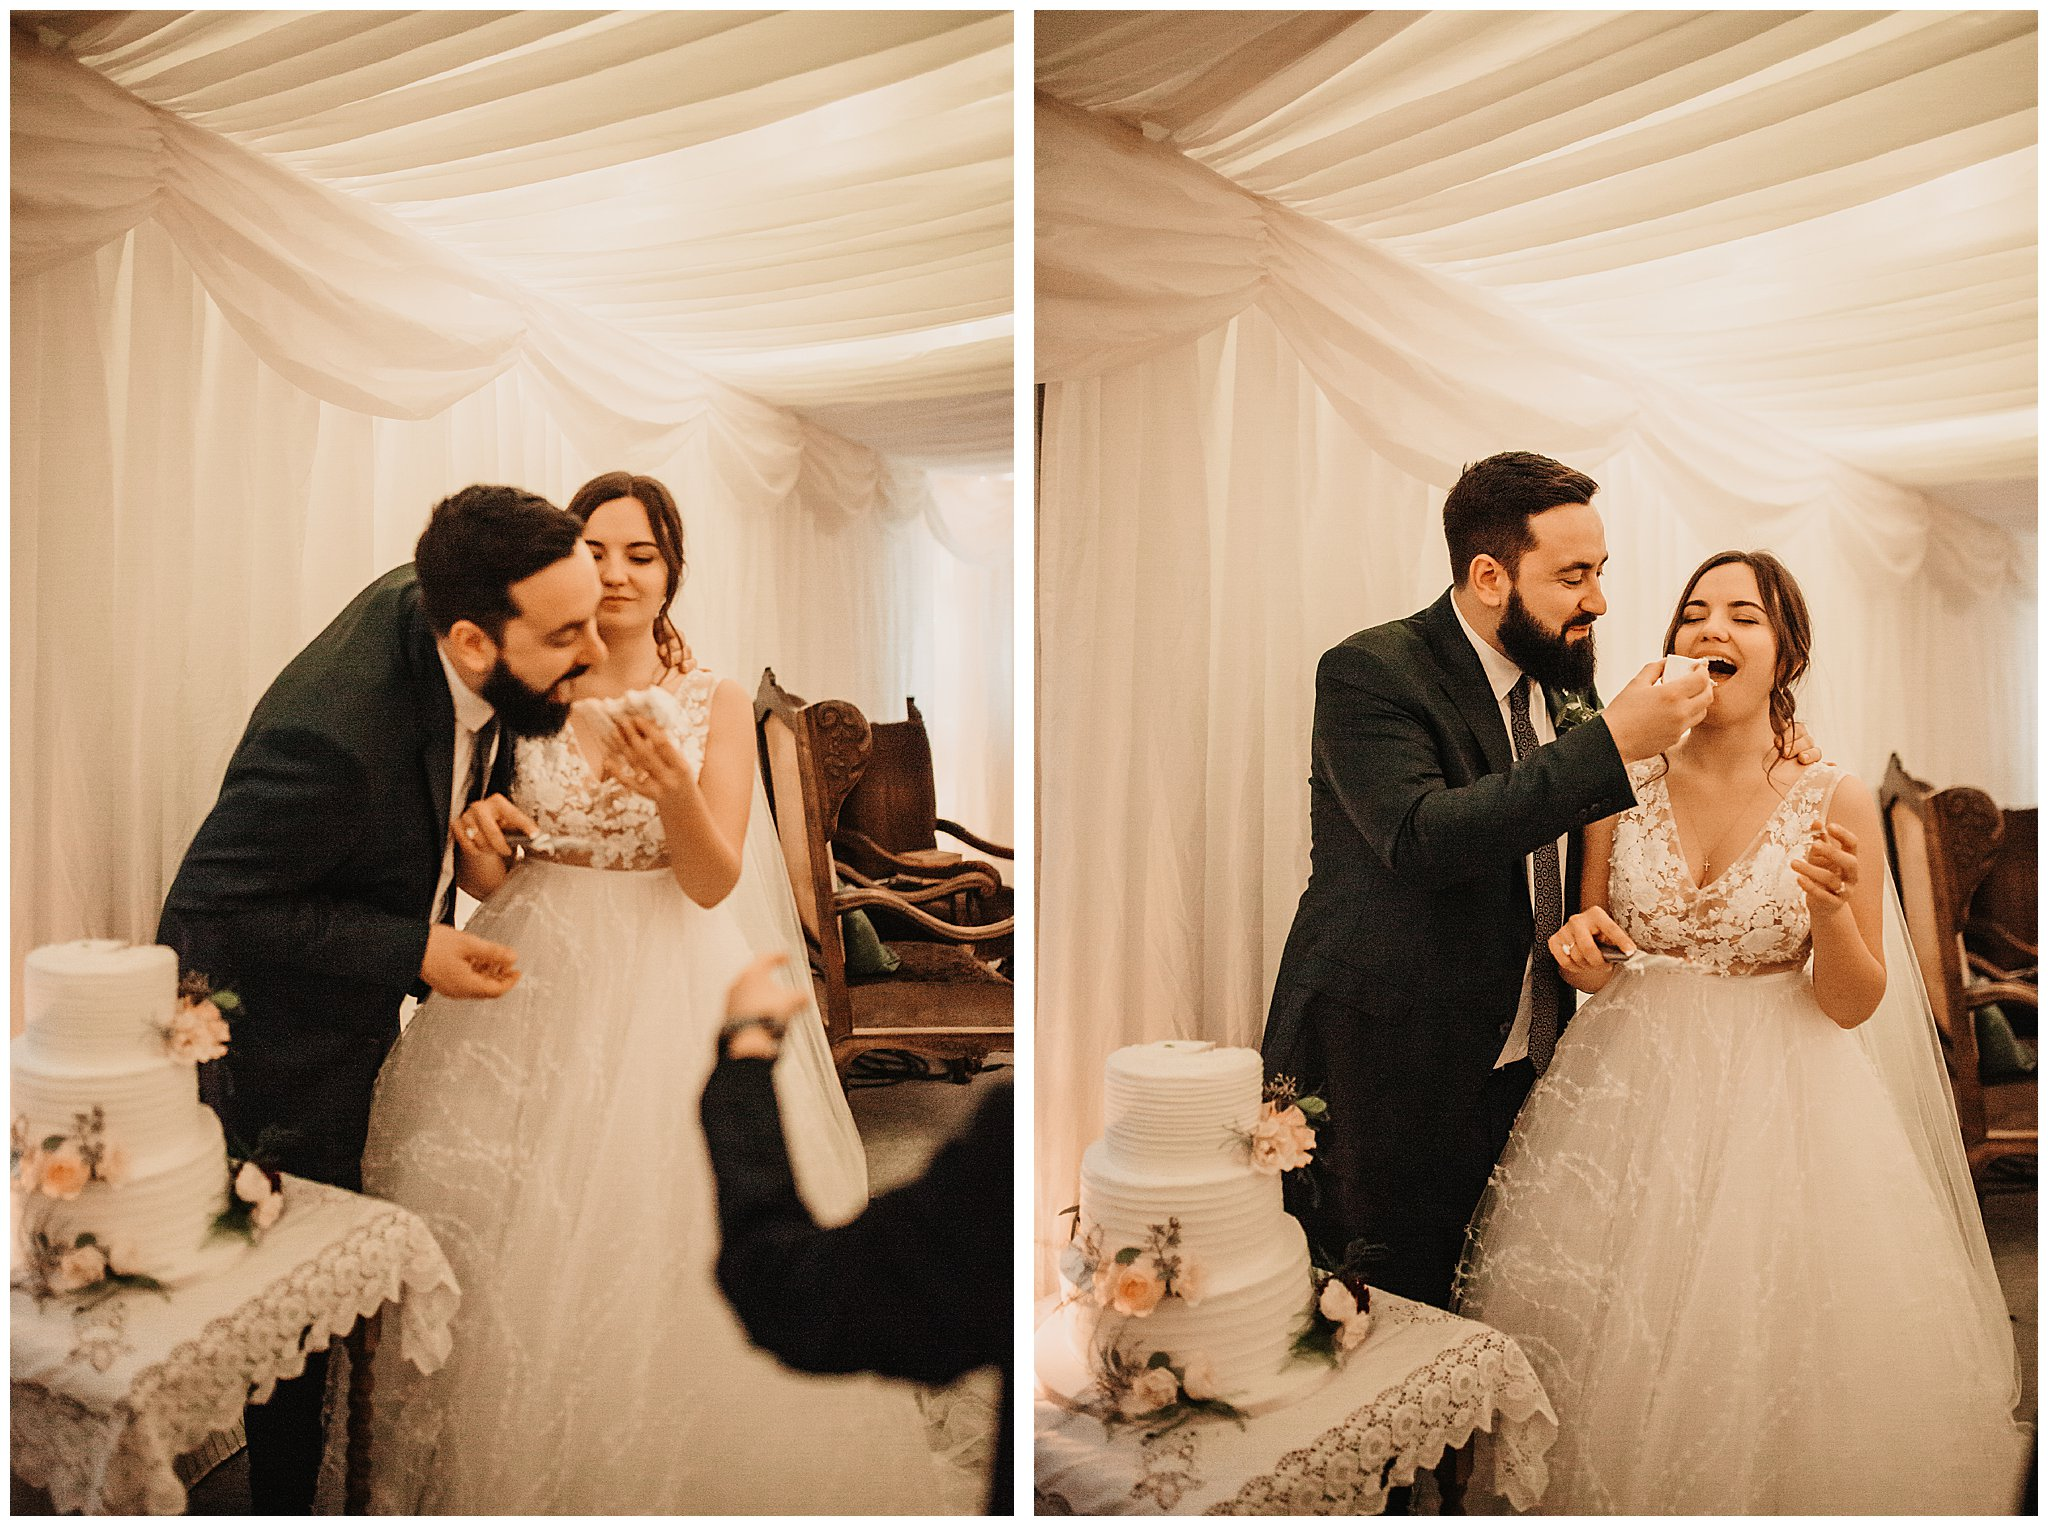 Max & Ksenia Autumnal Wiltshire Wedding-860.jpg